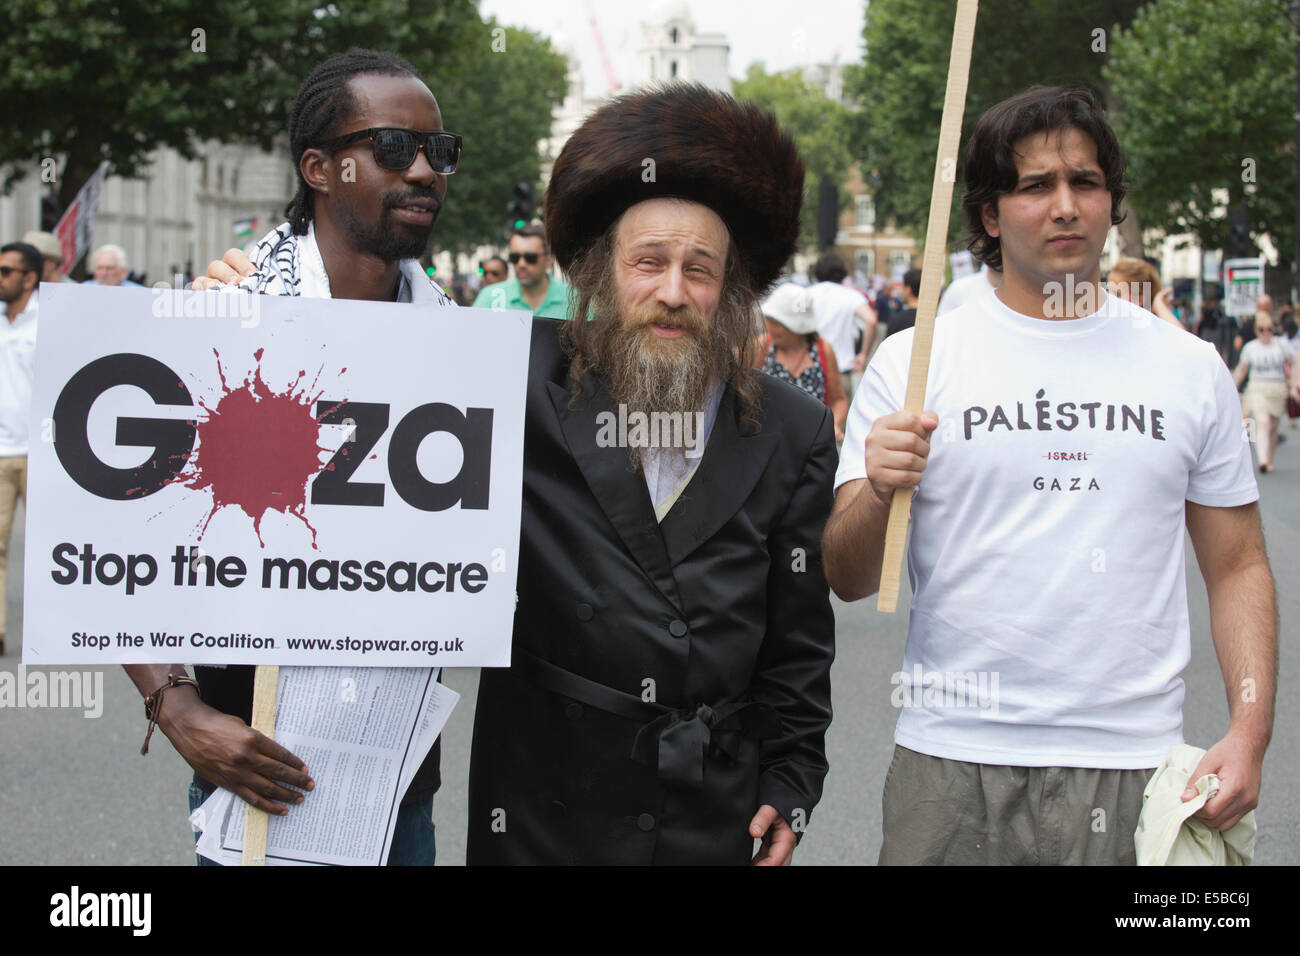 London, UK. 26 July 2014. An orthodox Jew poses with two protesters in Whitehall. Protesters gather in Parliament - Stock Image